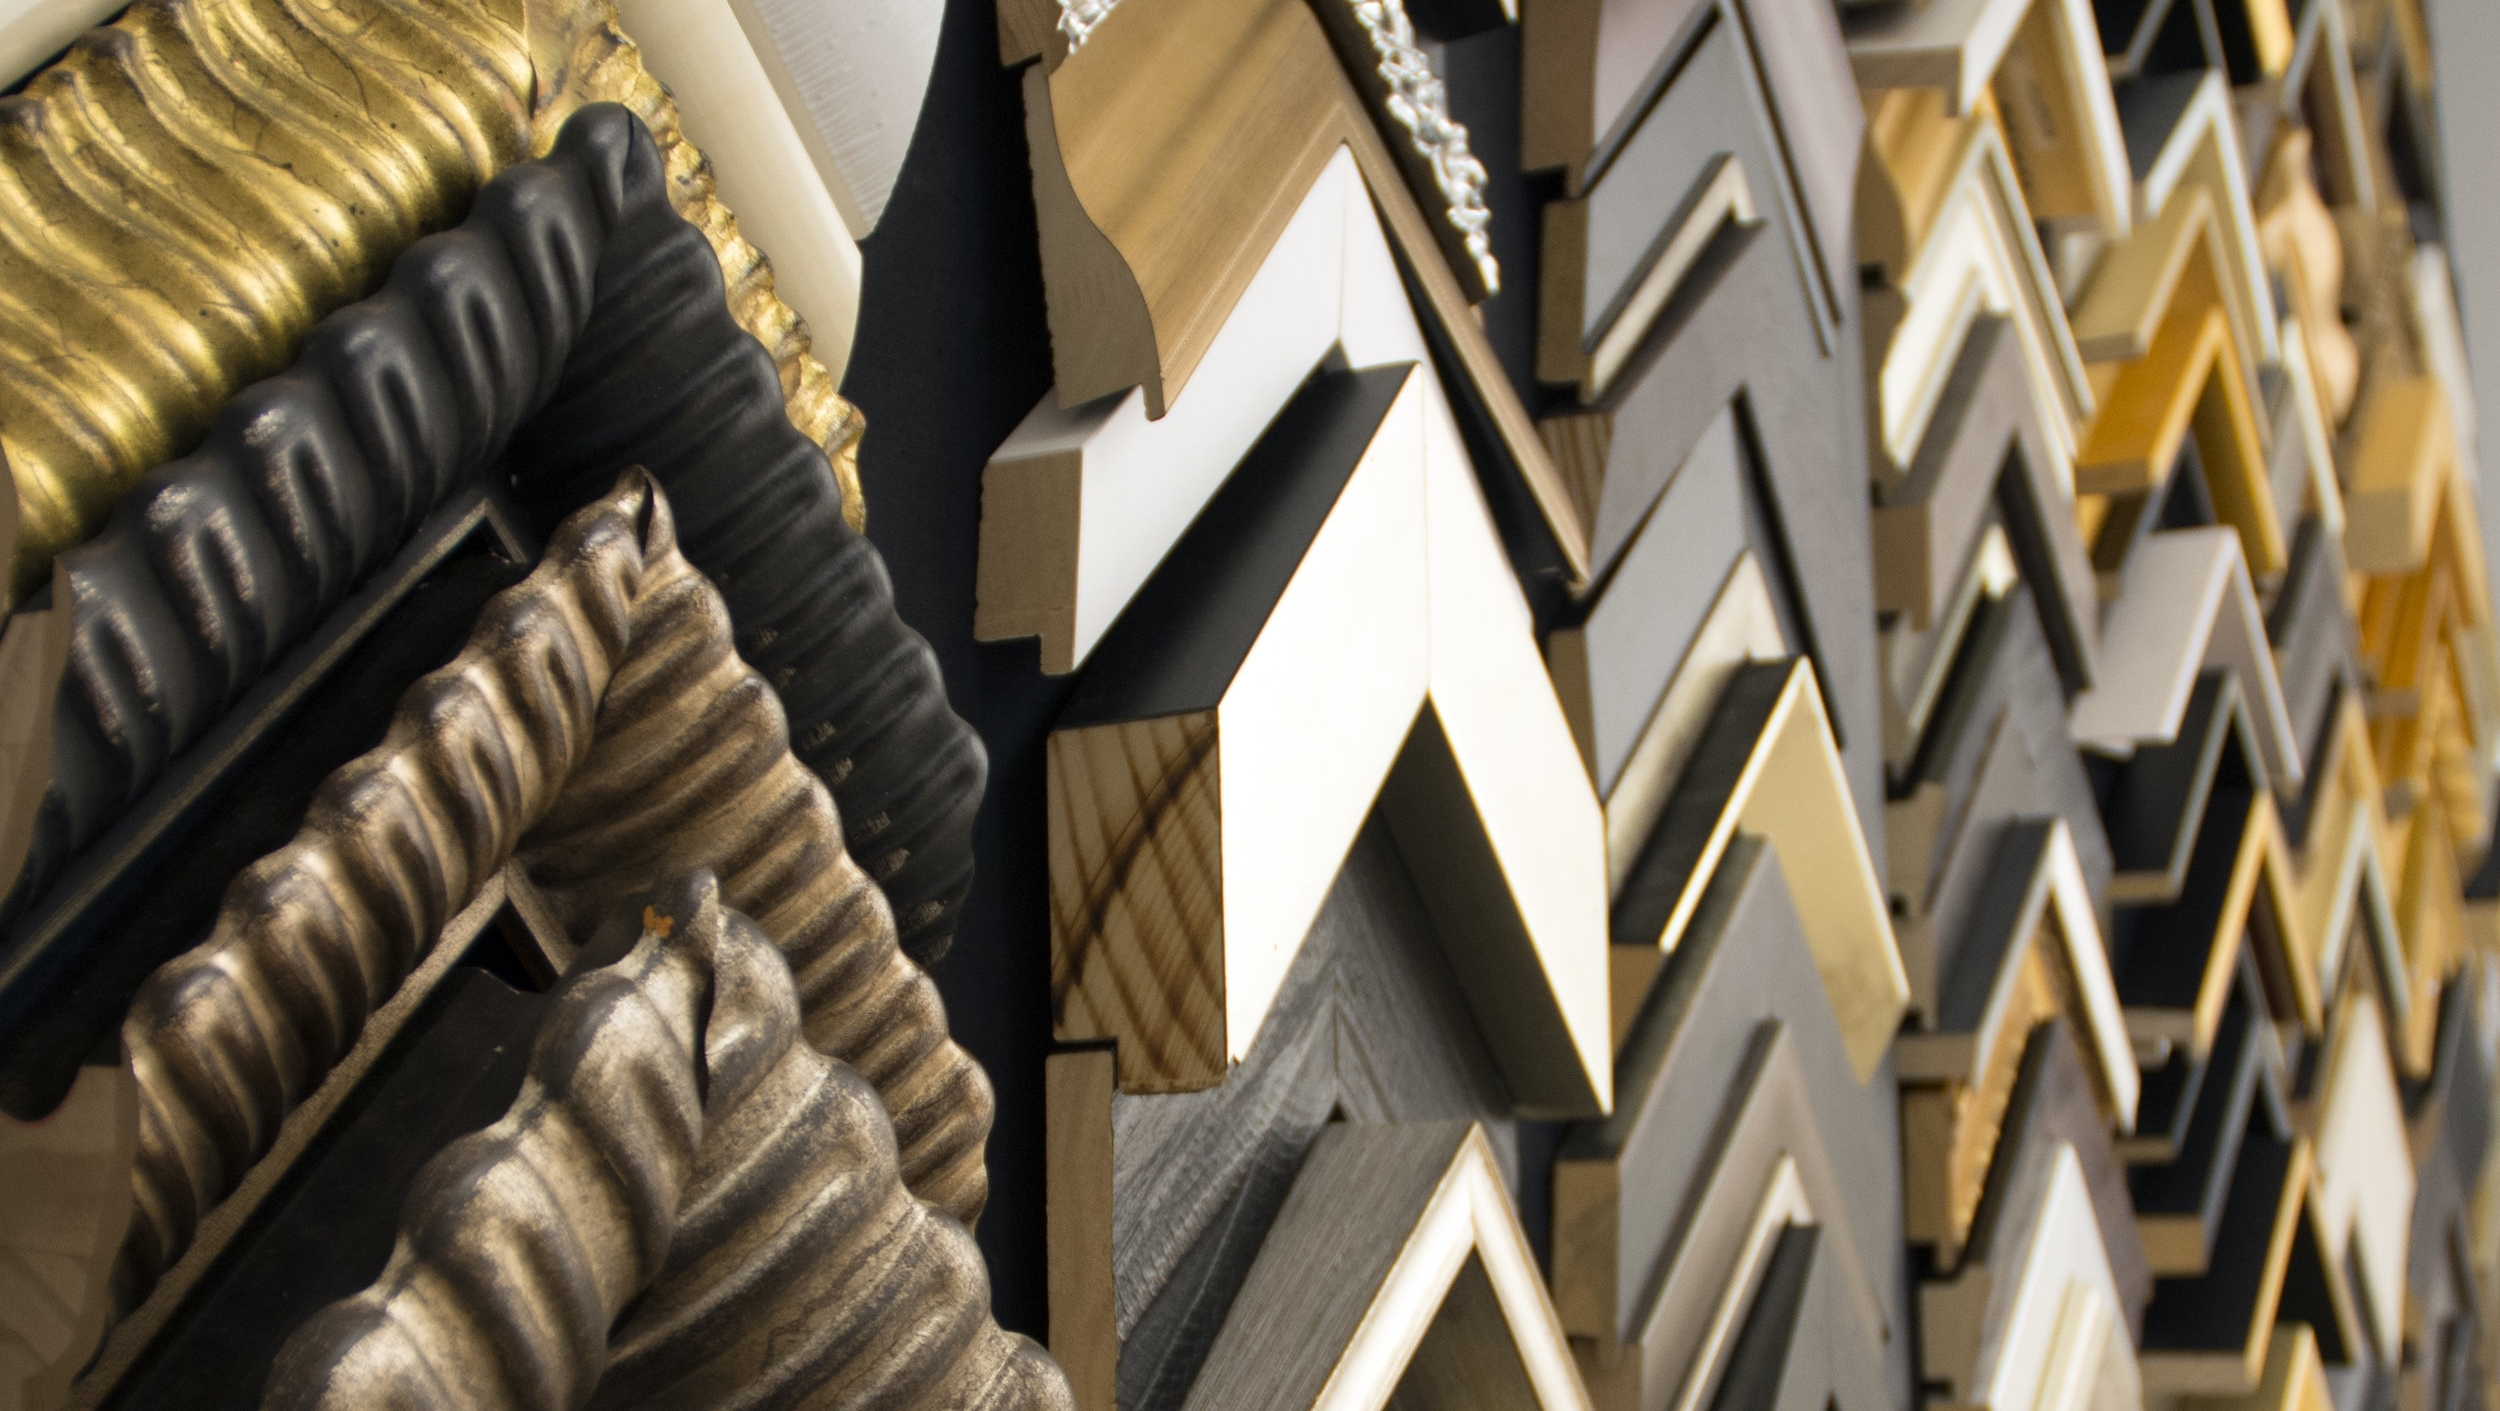 Framing and finishing - client-selected artwork happens at our South Boston frame shop. Our master framers and consultants collaborate to specify custom framing treatments, from specialty display techniques to budget-friendly solutions for high volume projects, that protect the value and maximize the impact of your investment.